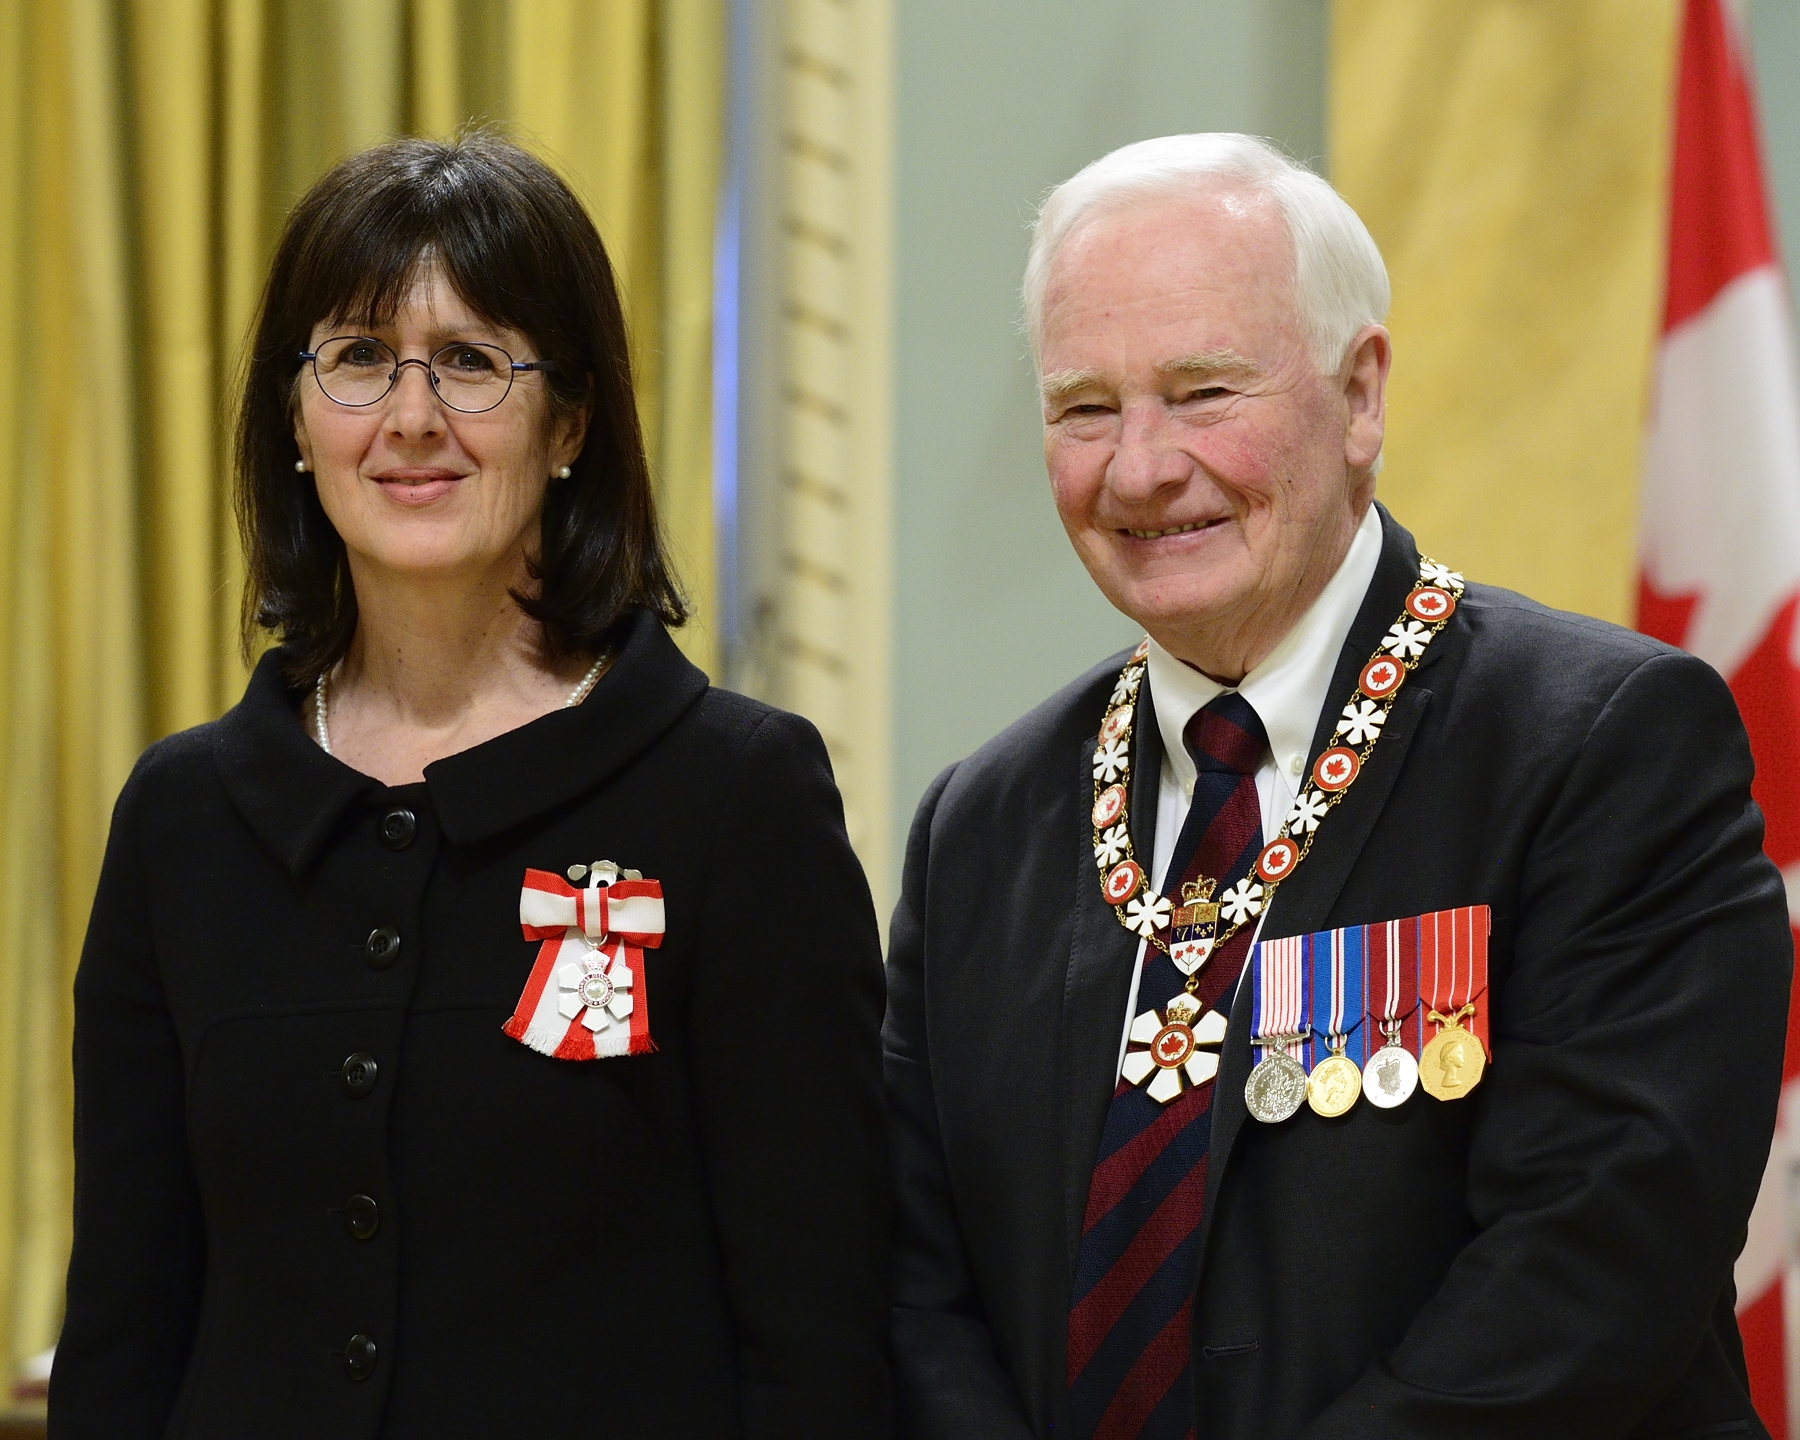 GG05-2017-0029-067 February 17, 2017 Rideau Hall, Ottawa, Ontario, Canada  His Excellency presents the Member insignia of the Order of Canada to Linda Cardinal, C.M.  His Excellency the Right Honourable David Johnston, Governor General of Canada, invested 3 Companions, 11 Officers and 28 Members into the Order of Canada during a special ceremony held at Rideau Hall on February 17, 2017.   The ceremony also marked the official release of the book They Desire a Better Country: The Order of Canada in 50 Stories, a collection of inspiring stories celebrating the 50th anniversary of the creation of the Order.  Credit: Sgt Johanie Maheu, Rideau Hall, OSGG